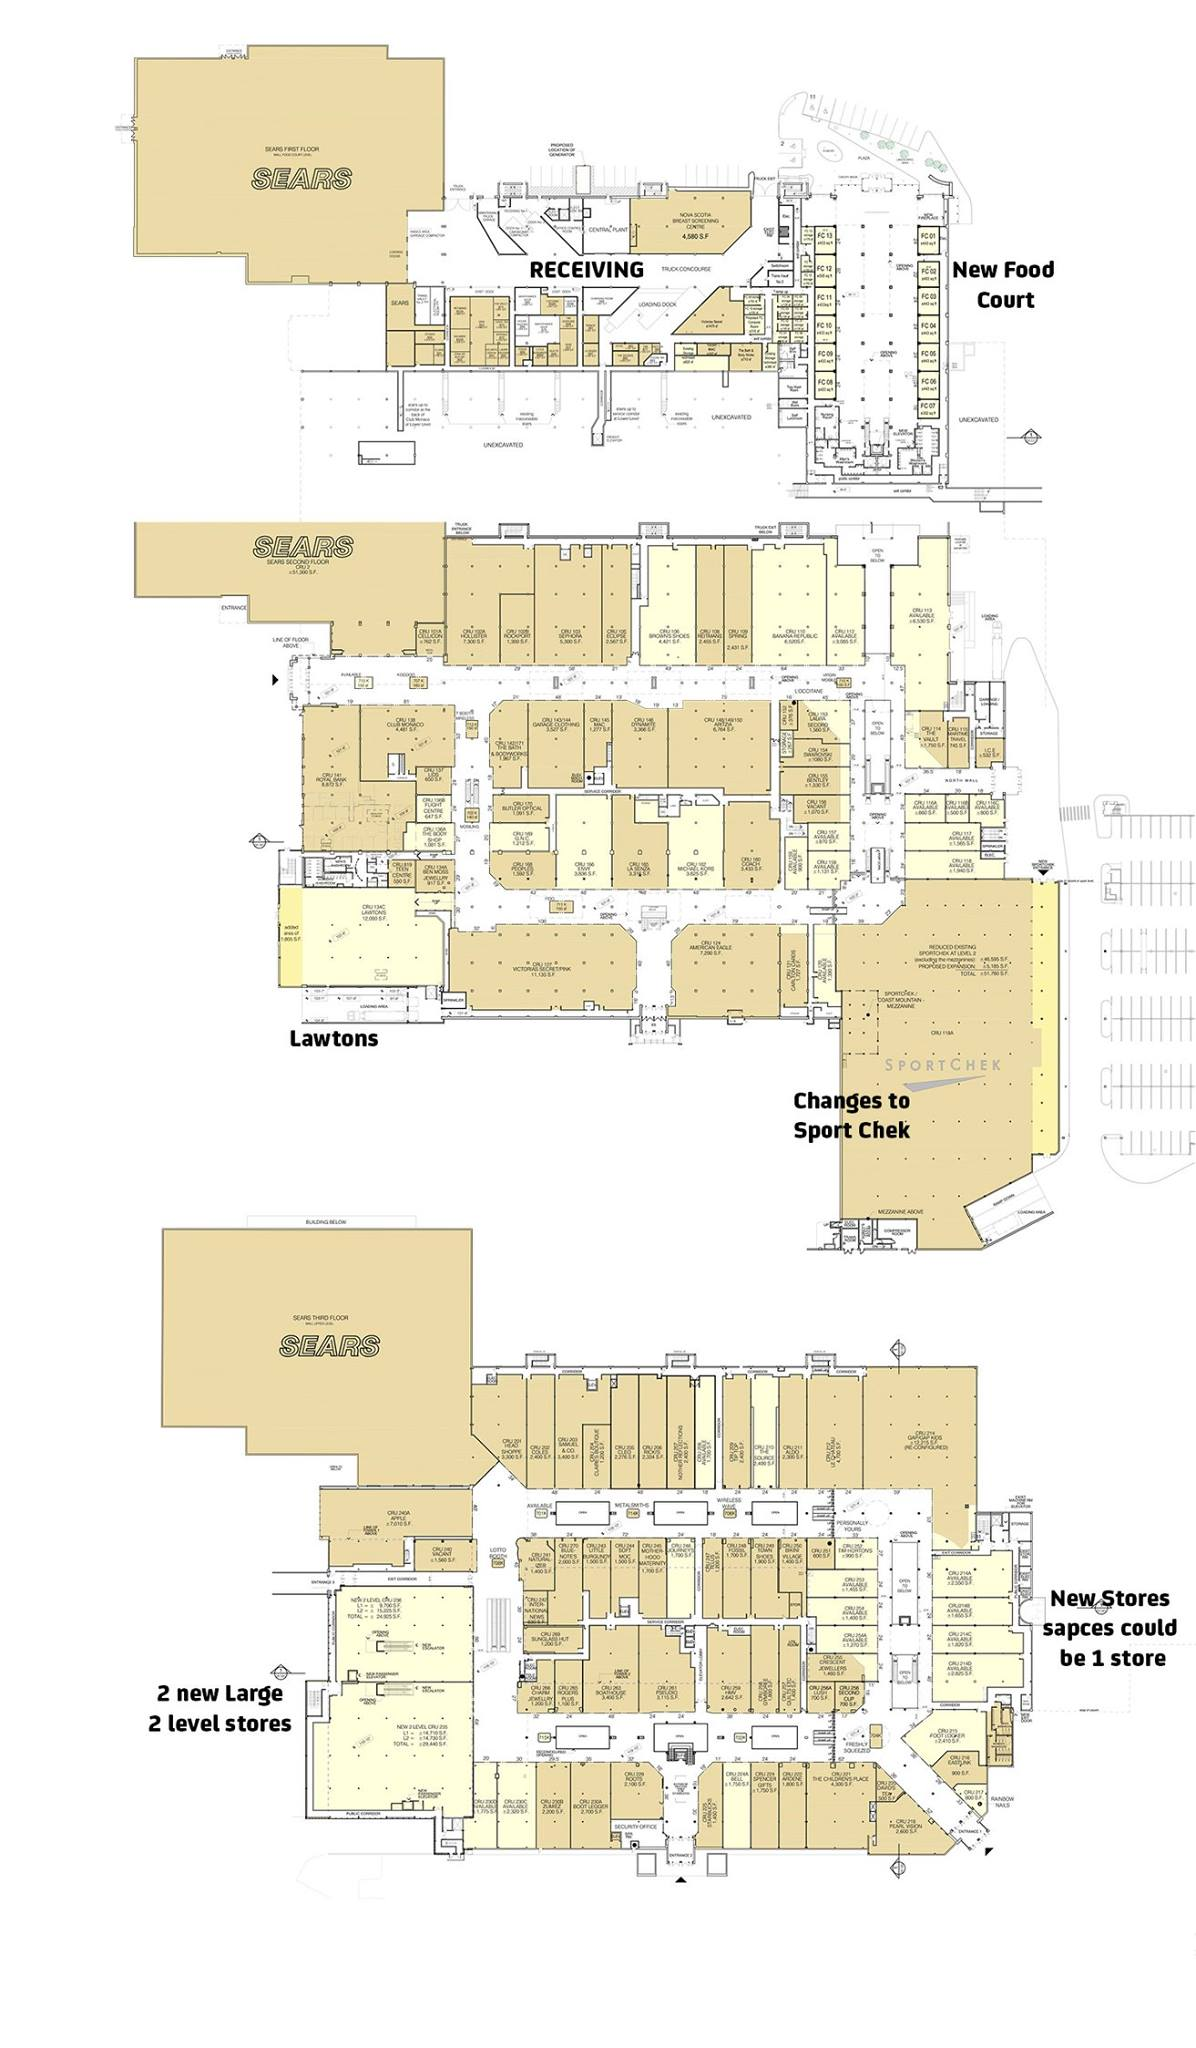 New Halifax Shopping Centre Layout, Growlers in the Dartmouth Burbs